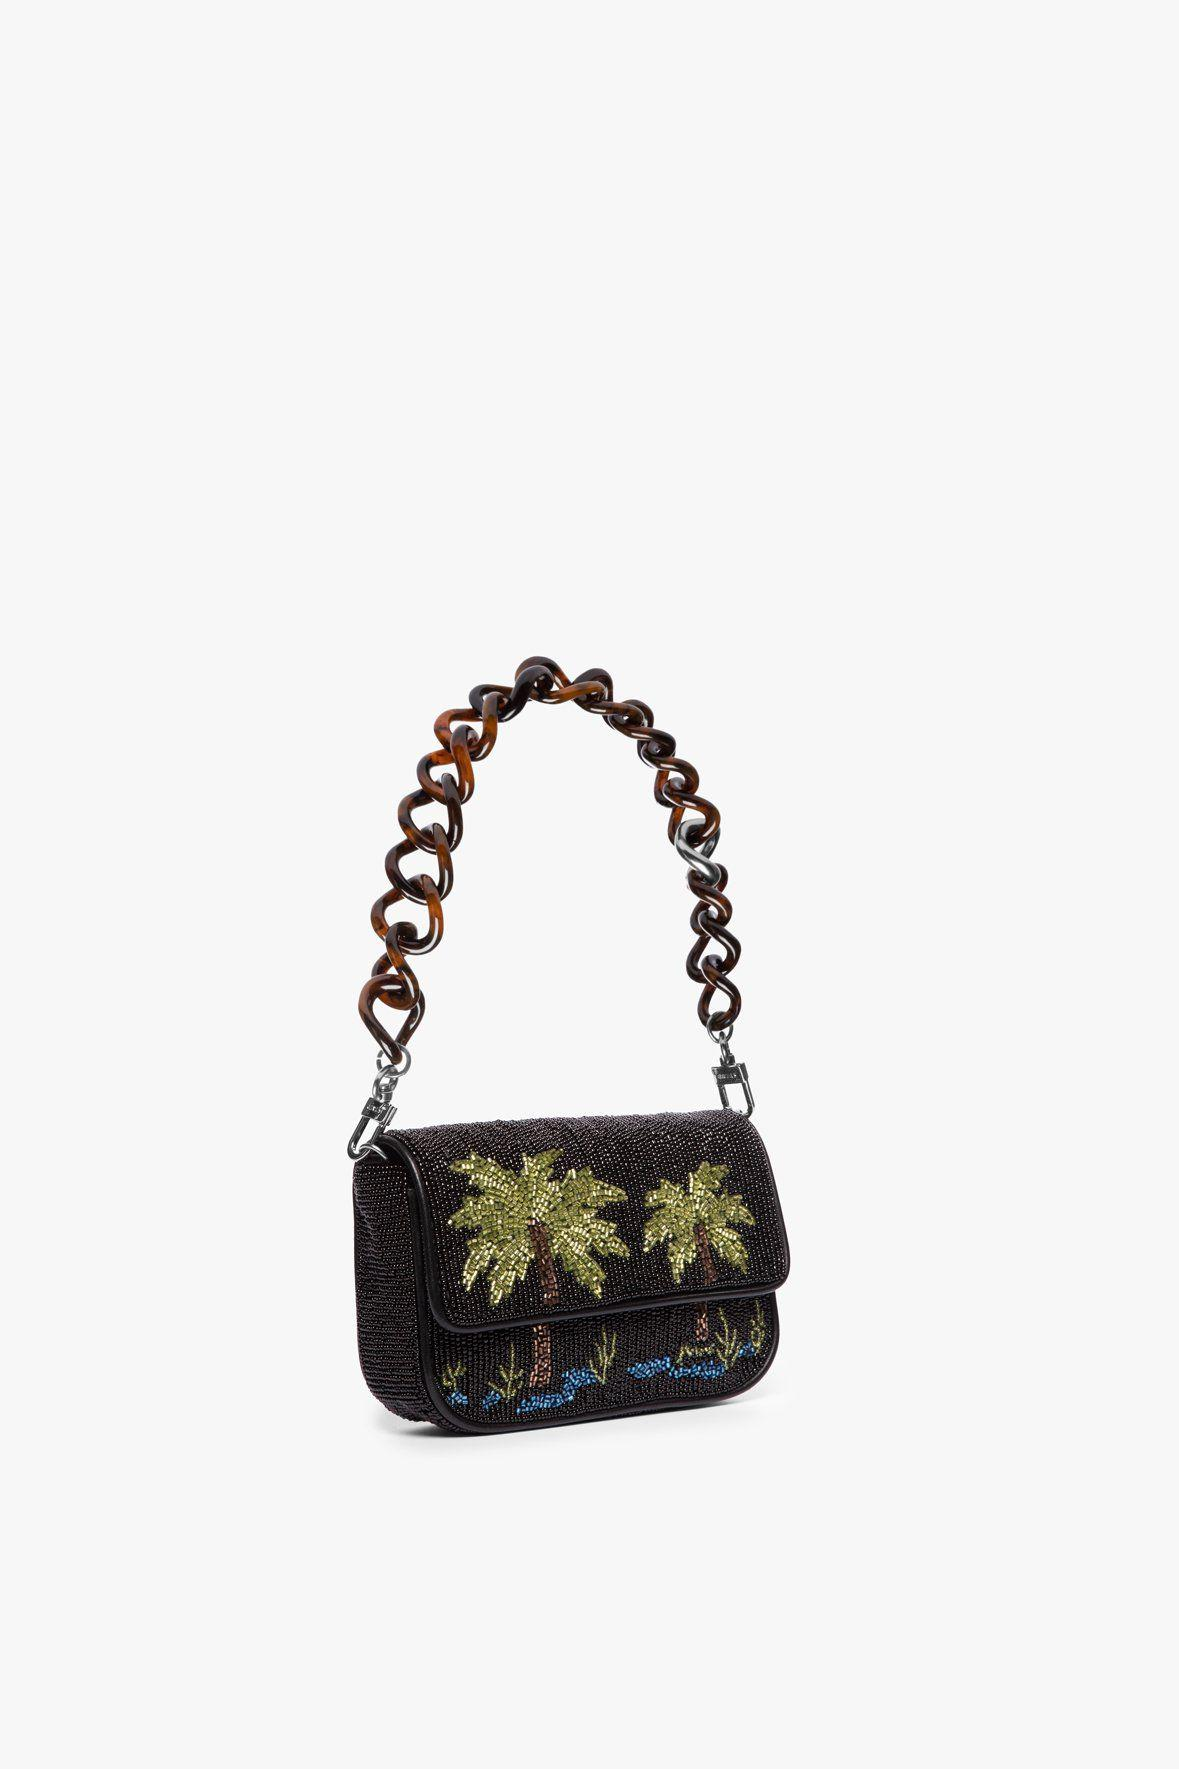 MINI TOMMY BEADED CHAIN BAG | PALM 4